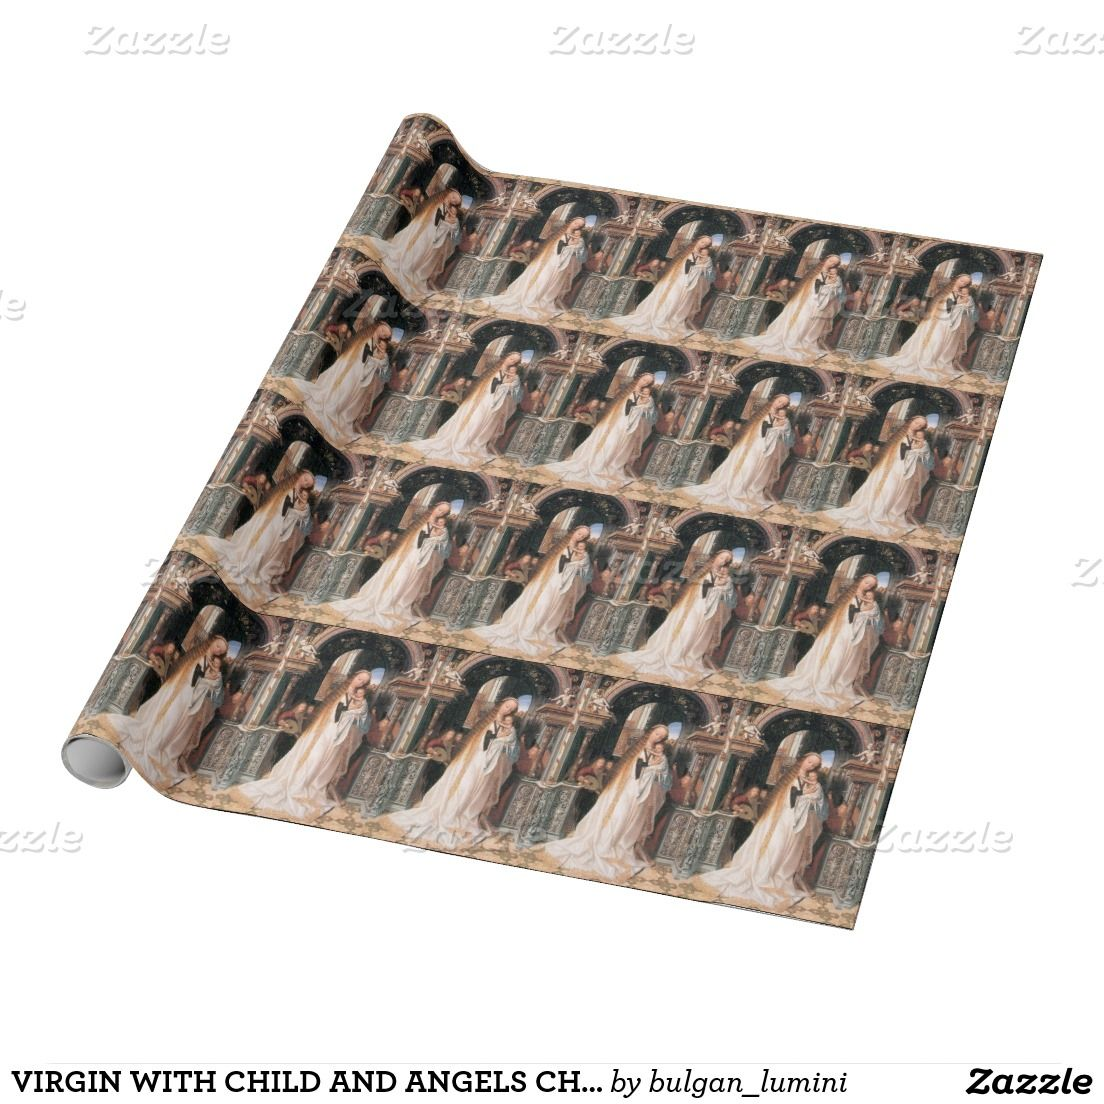 VIRGIN WITH CHILD AND ANGELS CHRISTMAS GREETINGS WRAPPING PAPER